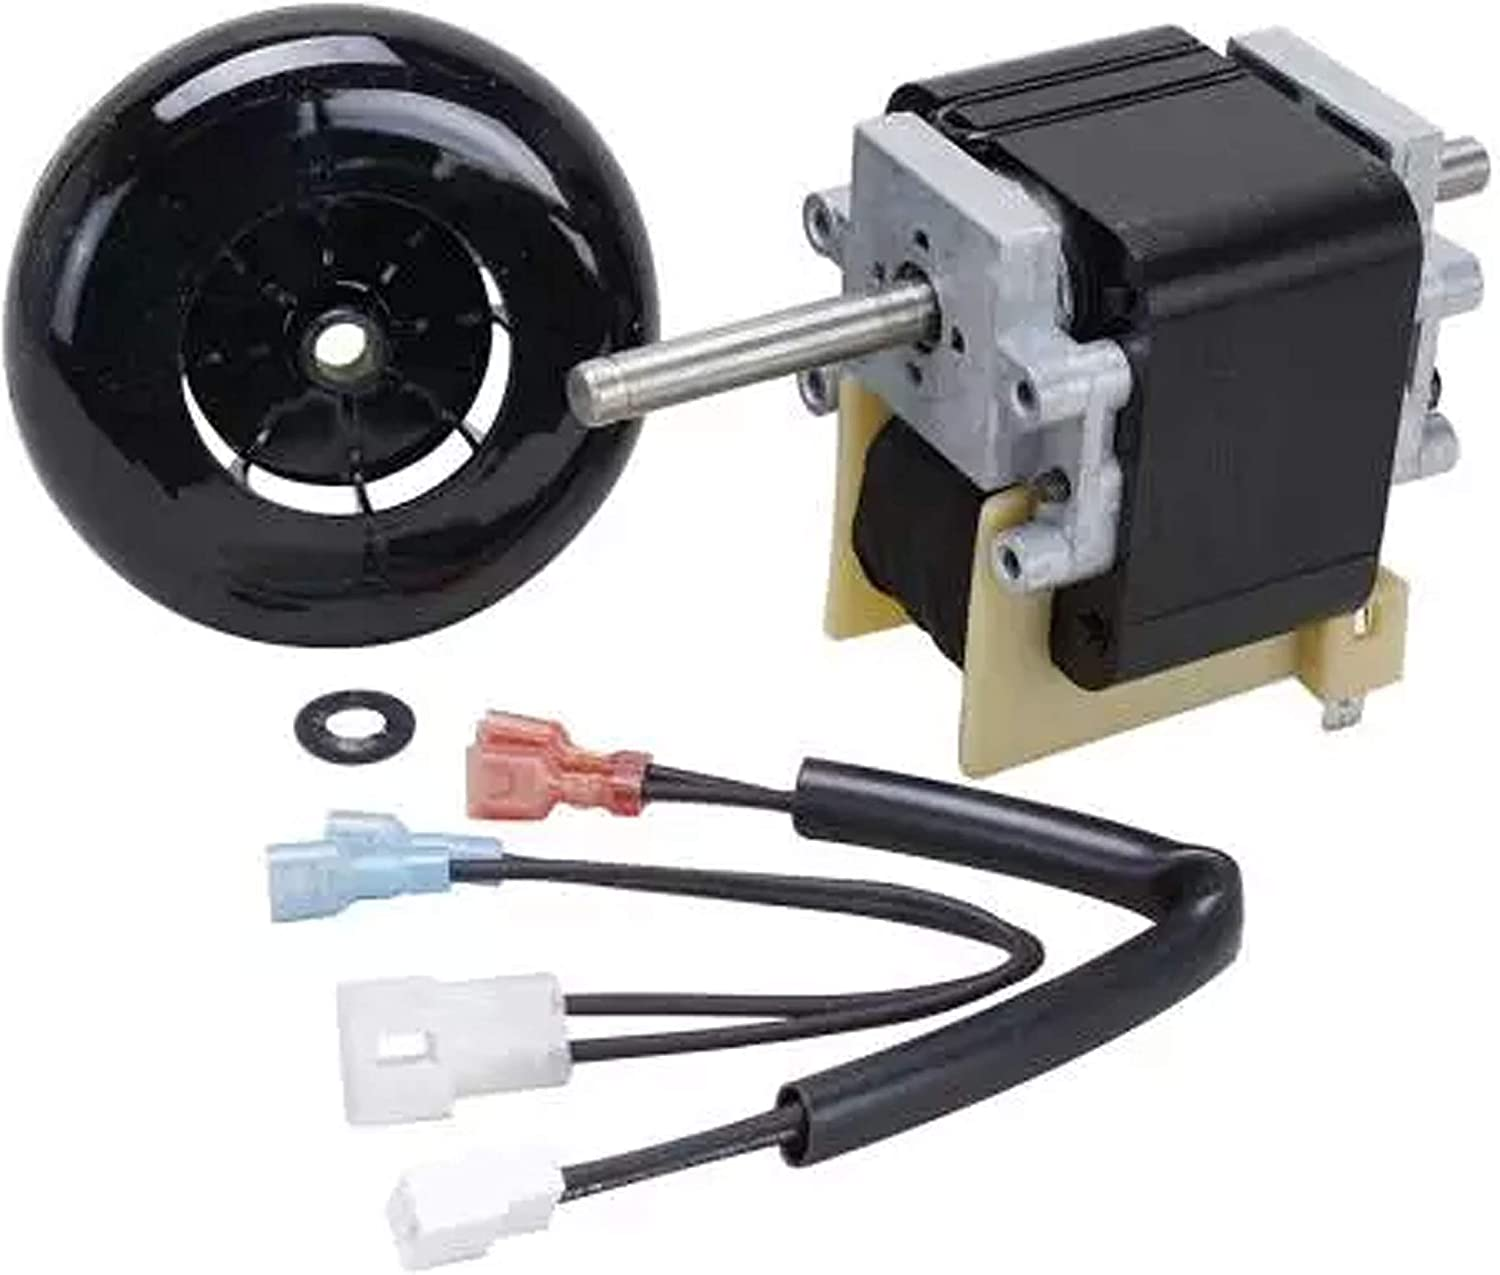 Furnace Inducer Draft Max 44% OFF Award-winning store Motor 10704 Replaces Carrier 318984-753